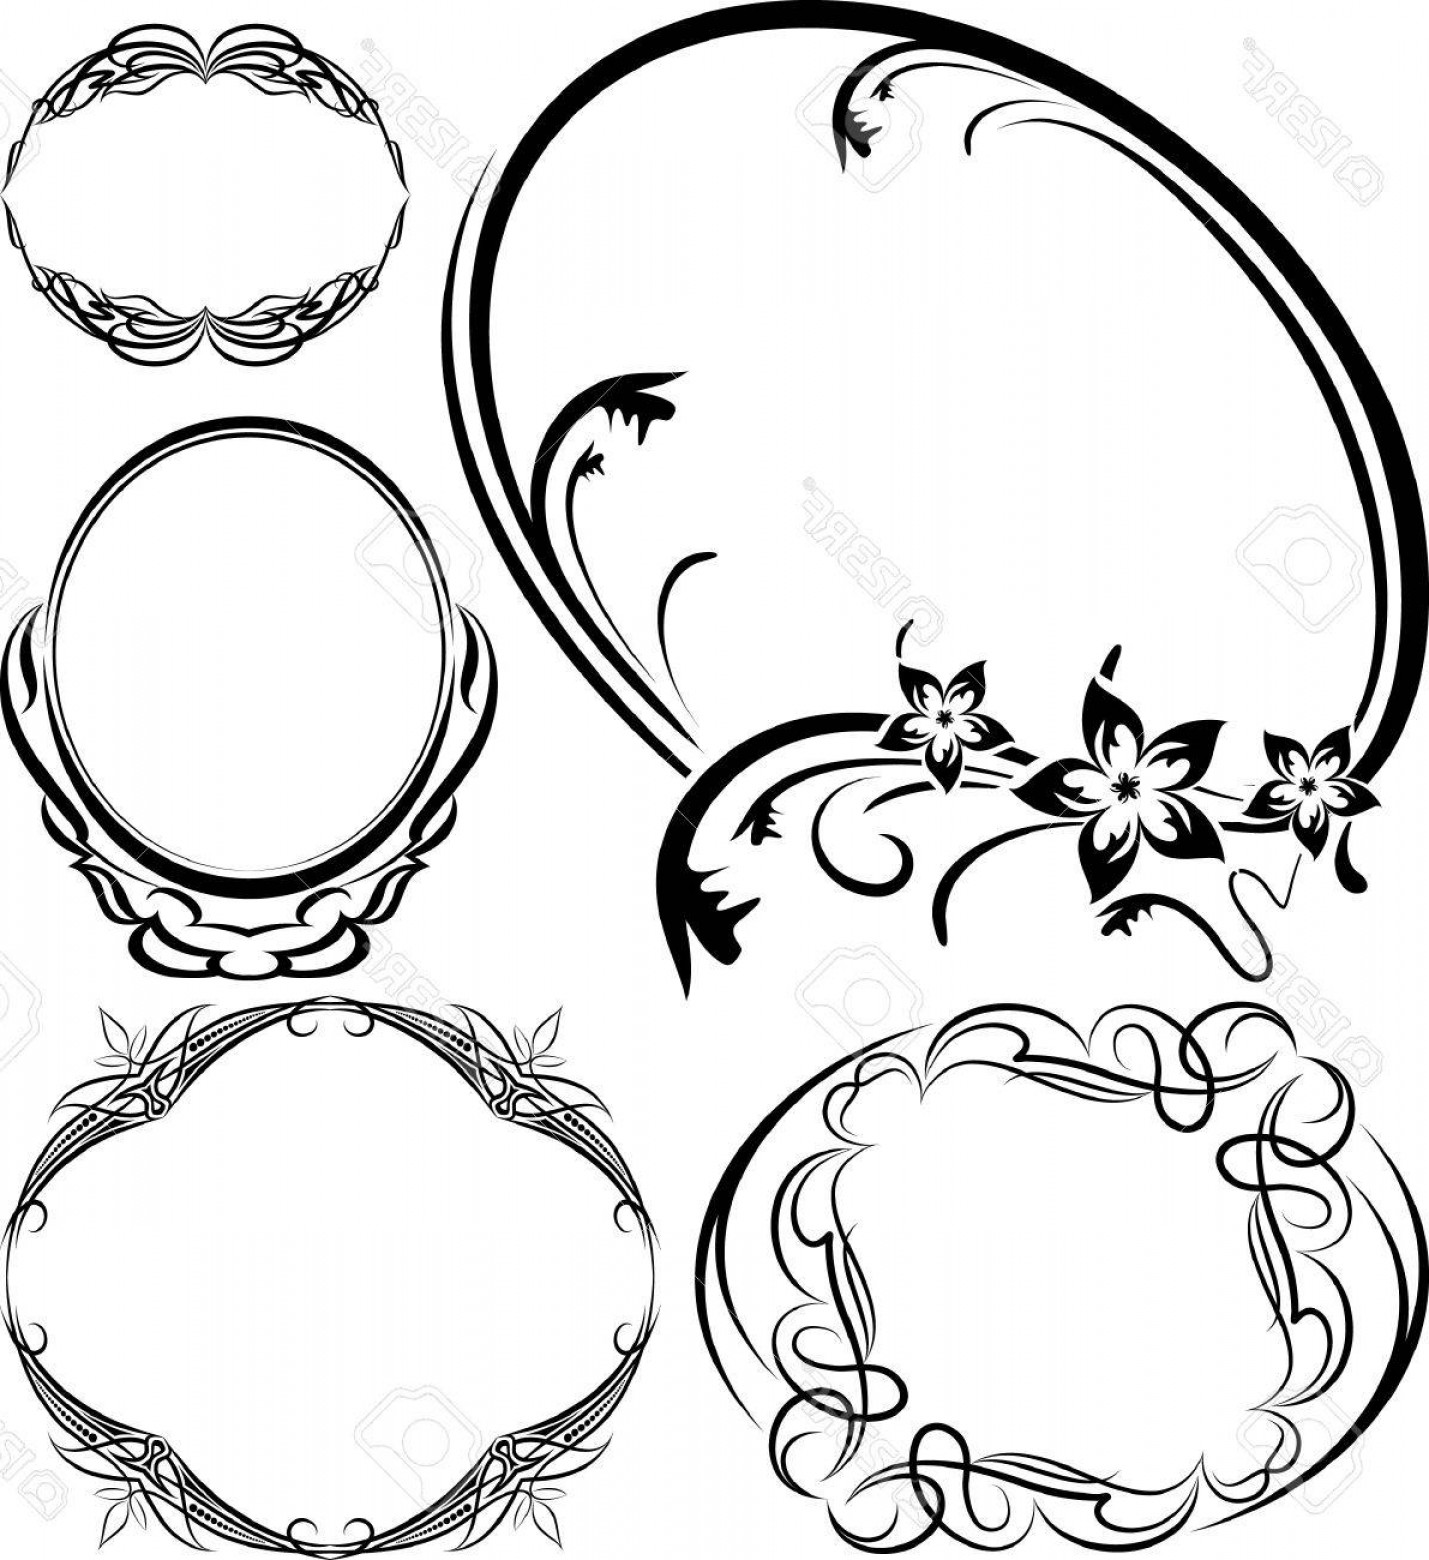 Filigree Oval Frame Vector: Photoset Of Elegant Oval Frame Vector